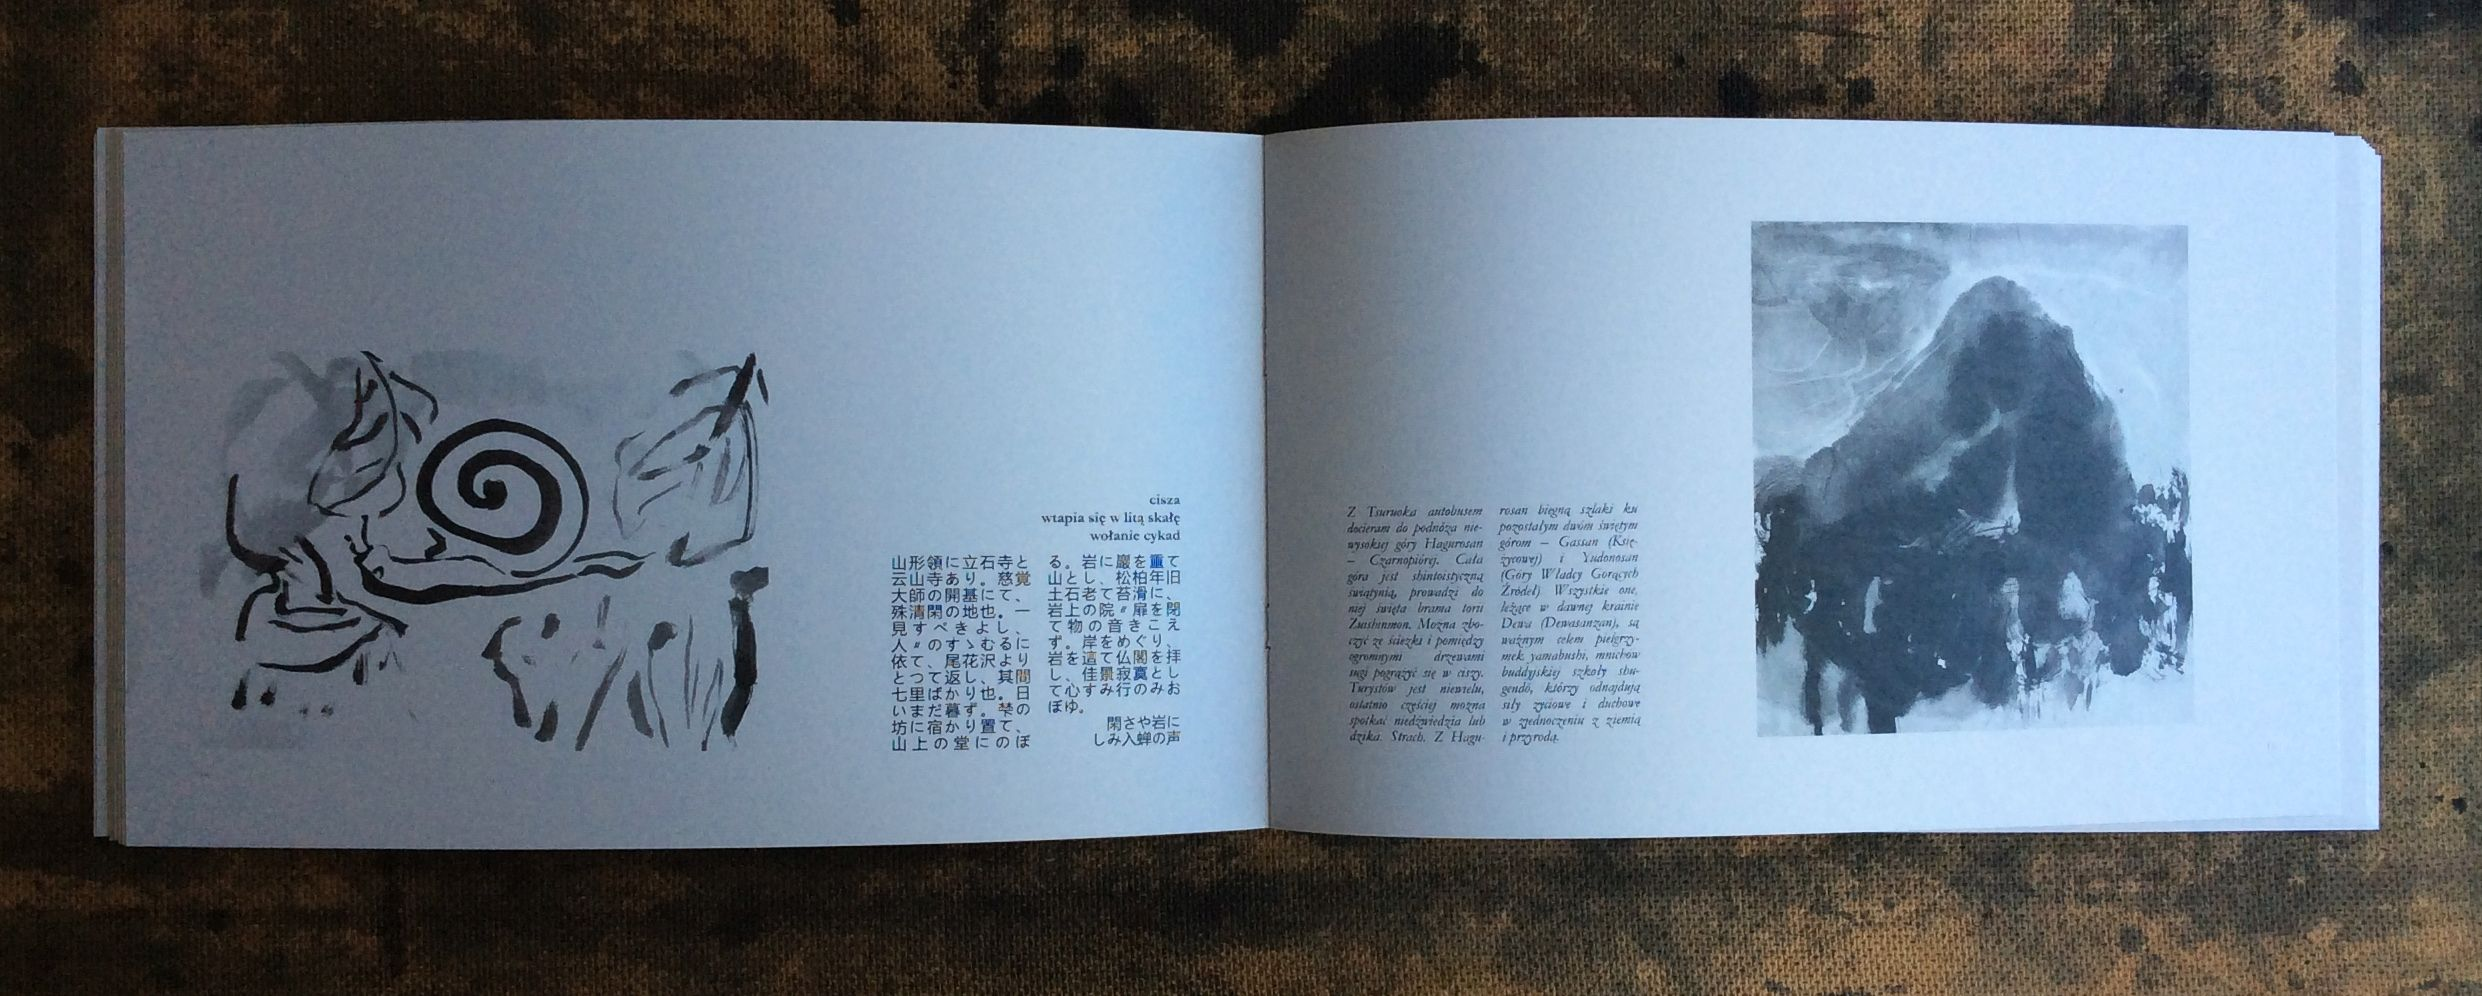 Excerpts from Matsuo Bashō's Oku no hosomichi and Agnieszka Żuławska-Umeda's journal from a hike in the footsteps of the poet in 2016. The publication was illustrated by Agata Jóźwiak and it was firstly presented online in 2021.